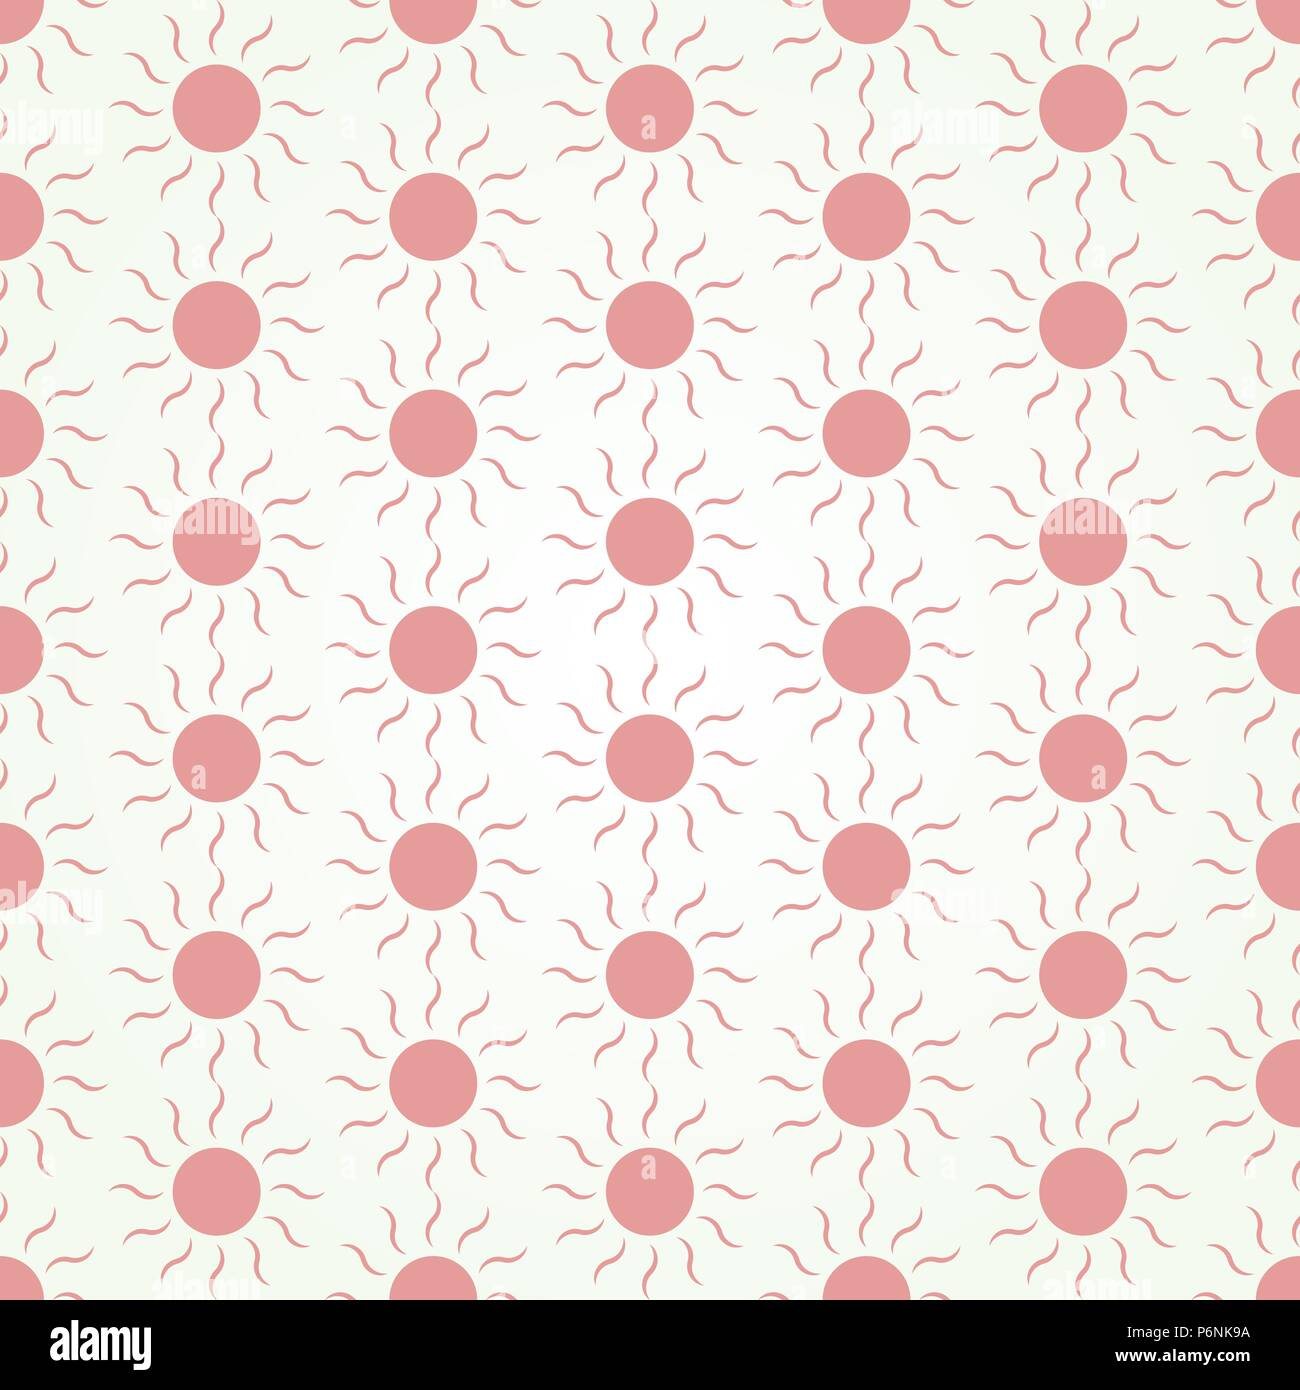 Red Sun shape seamless pattern on pastel color. Circle and swirl in sweet style for abstract or graphic design - Stock Vector